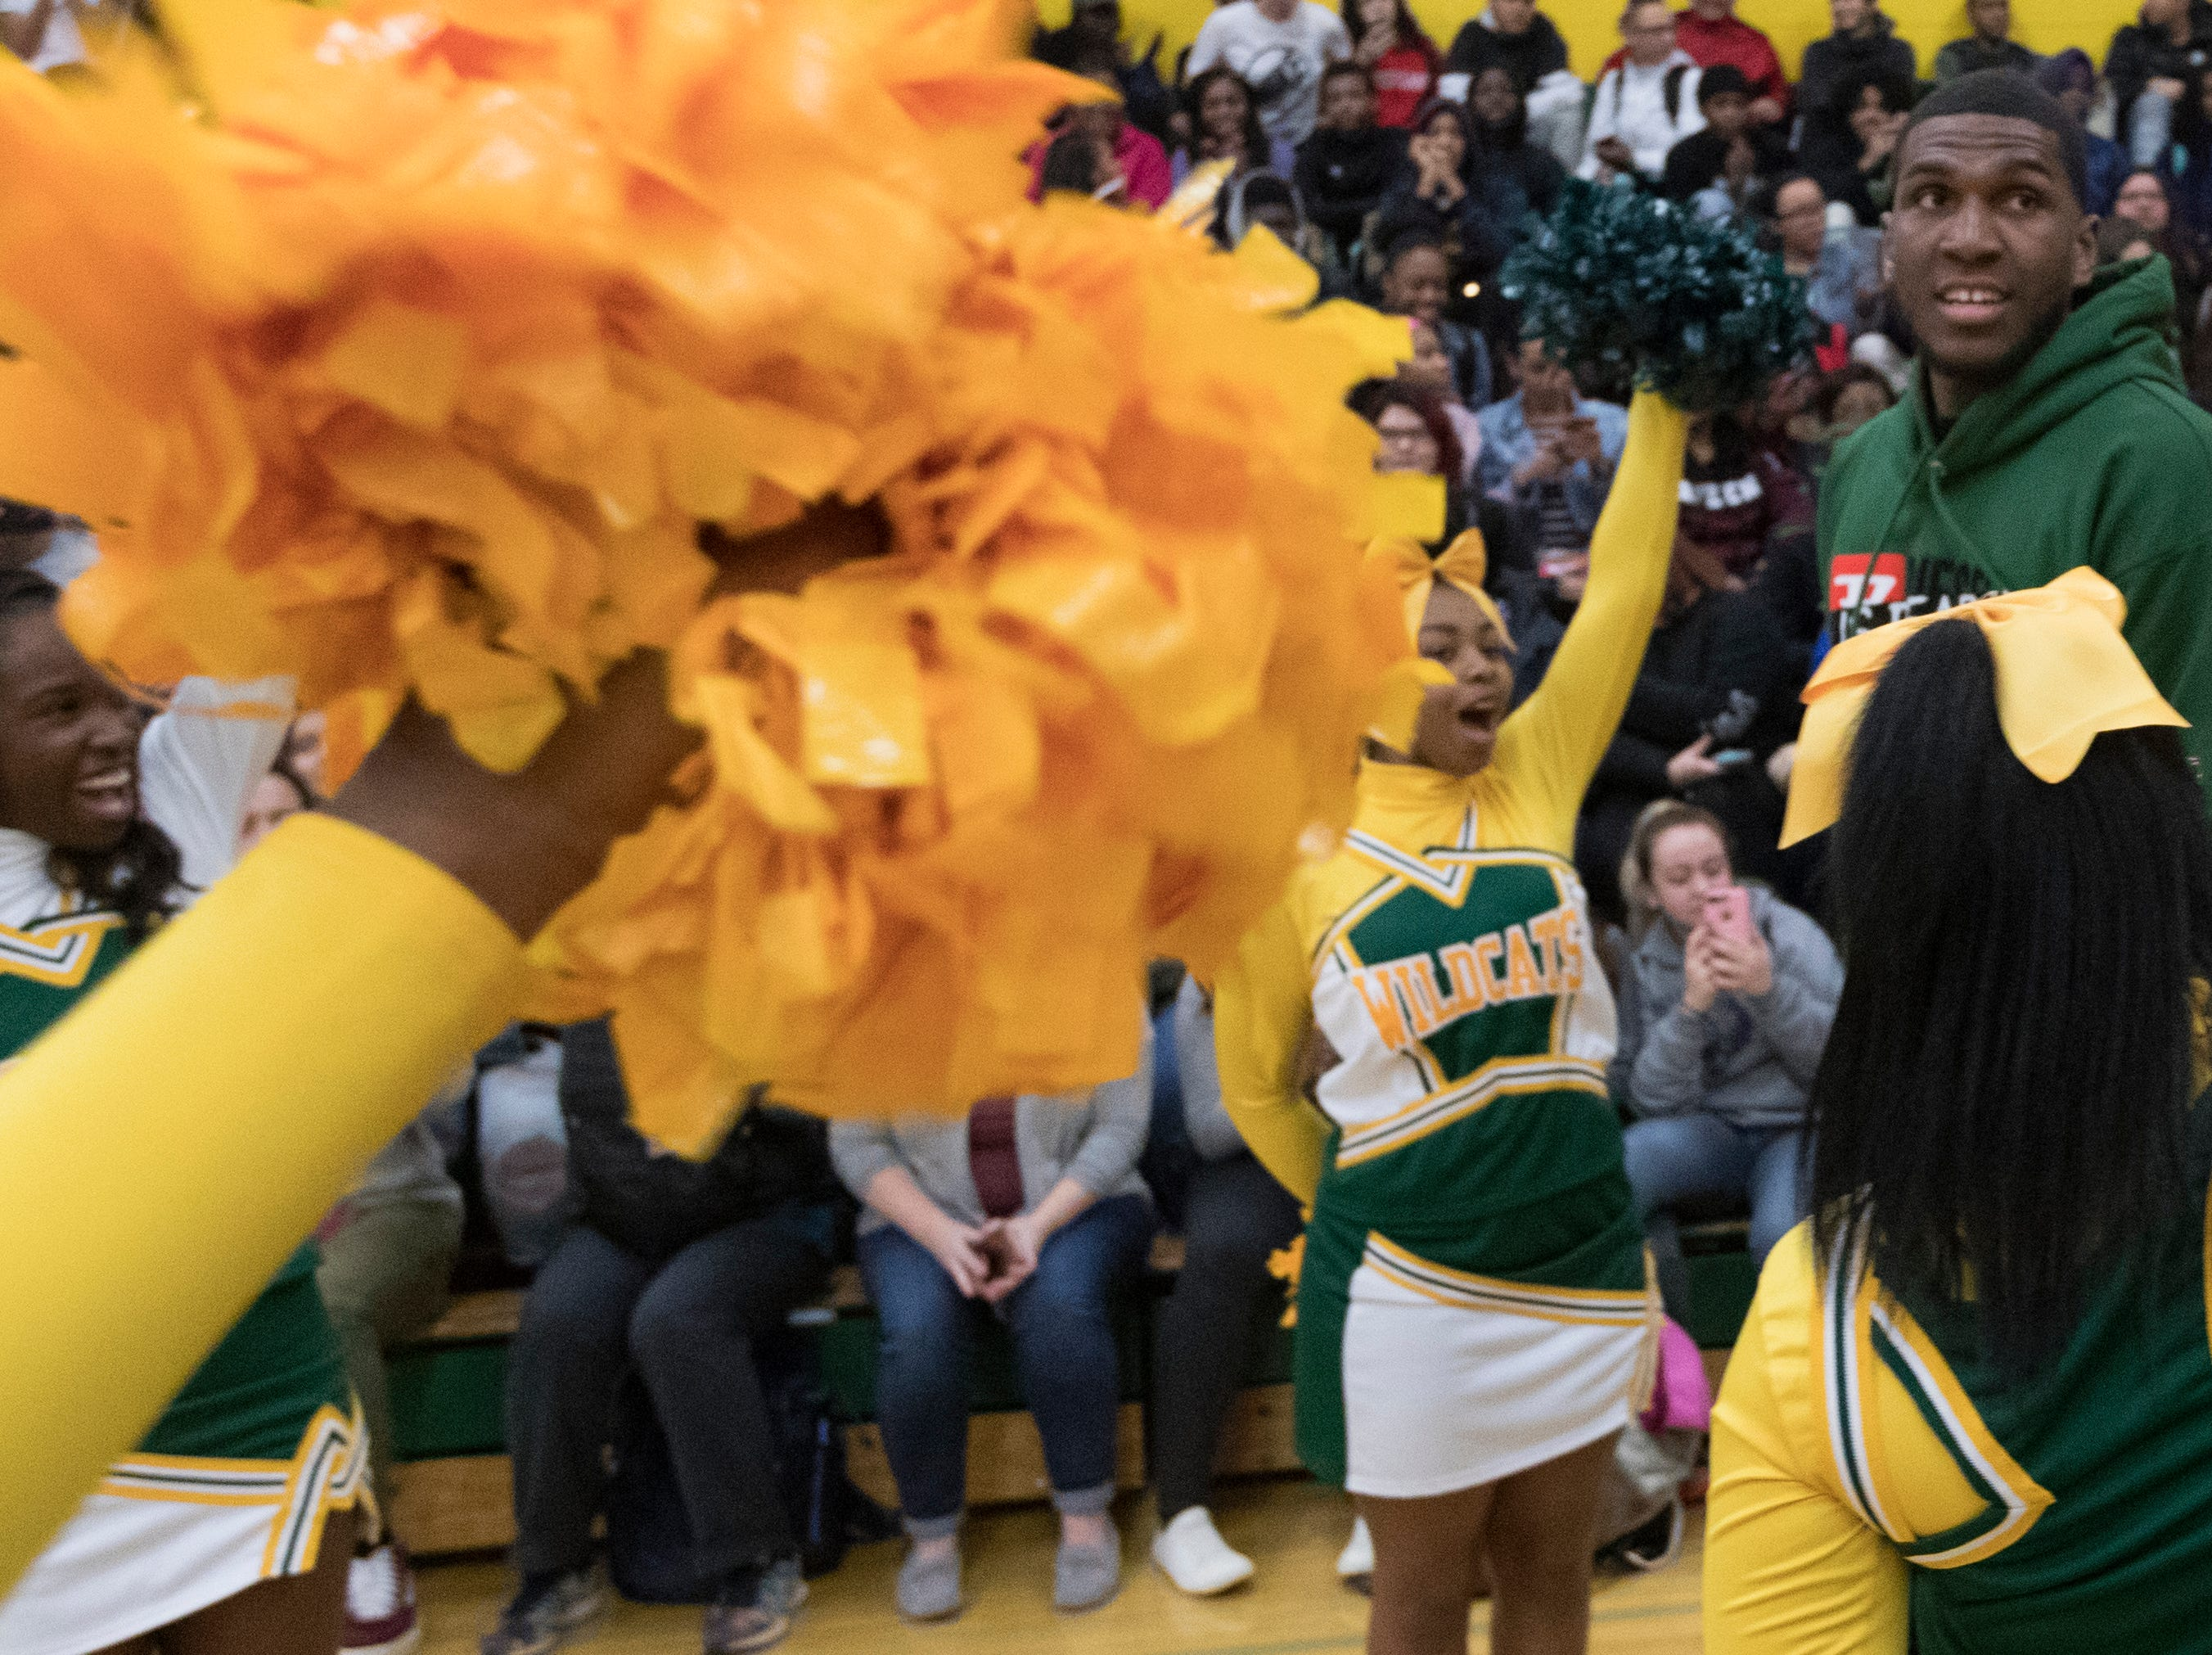 Golden State Warrior center Kevon Looney takes part in a ceremony where his jersey is retired  Thursday, December 6, 2018 at Hamilton High School.